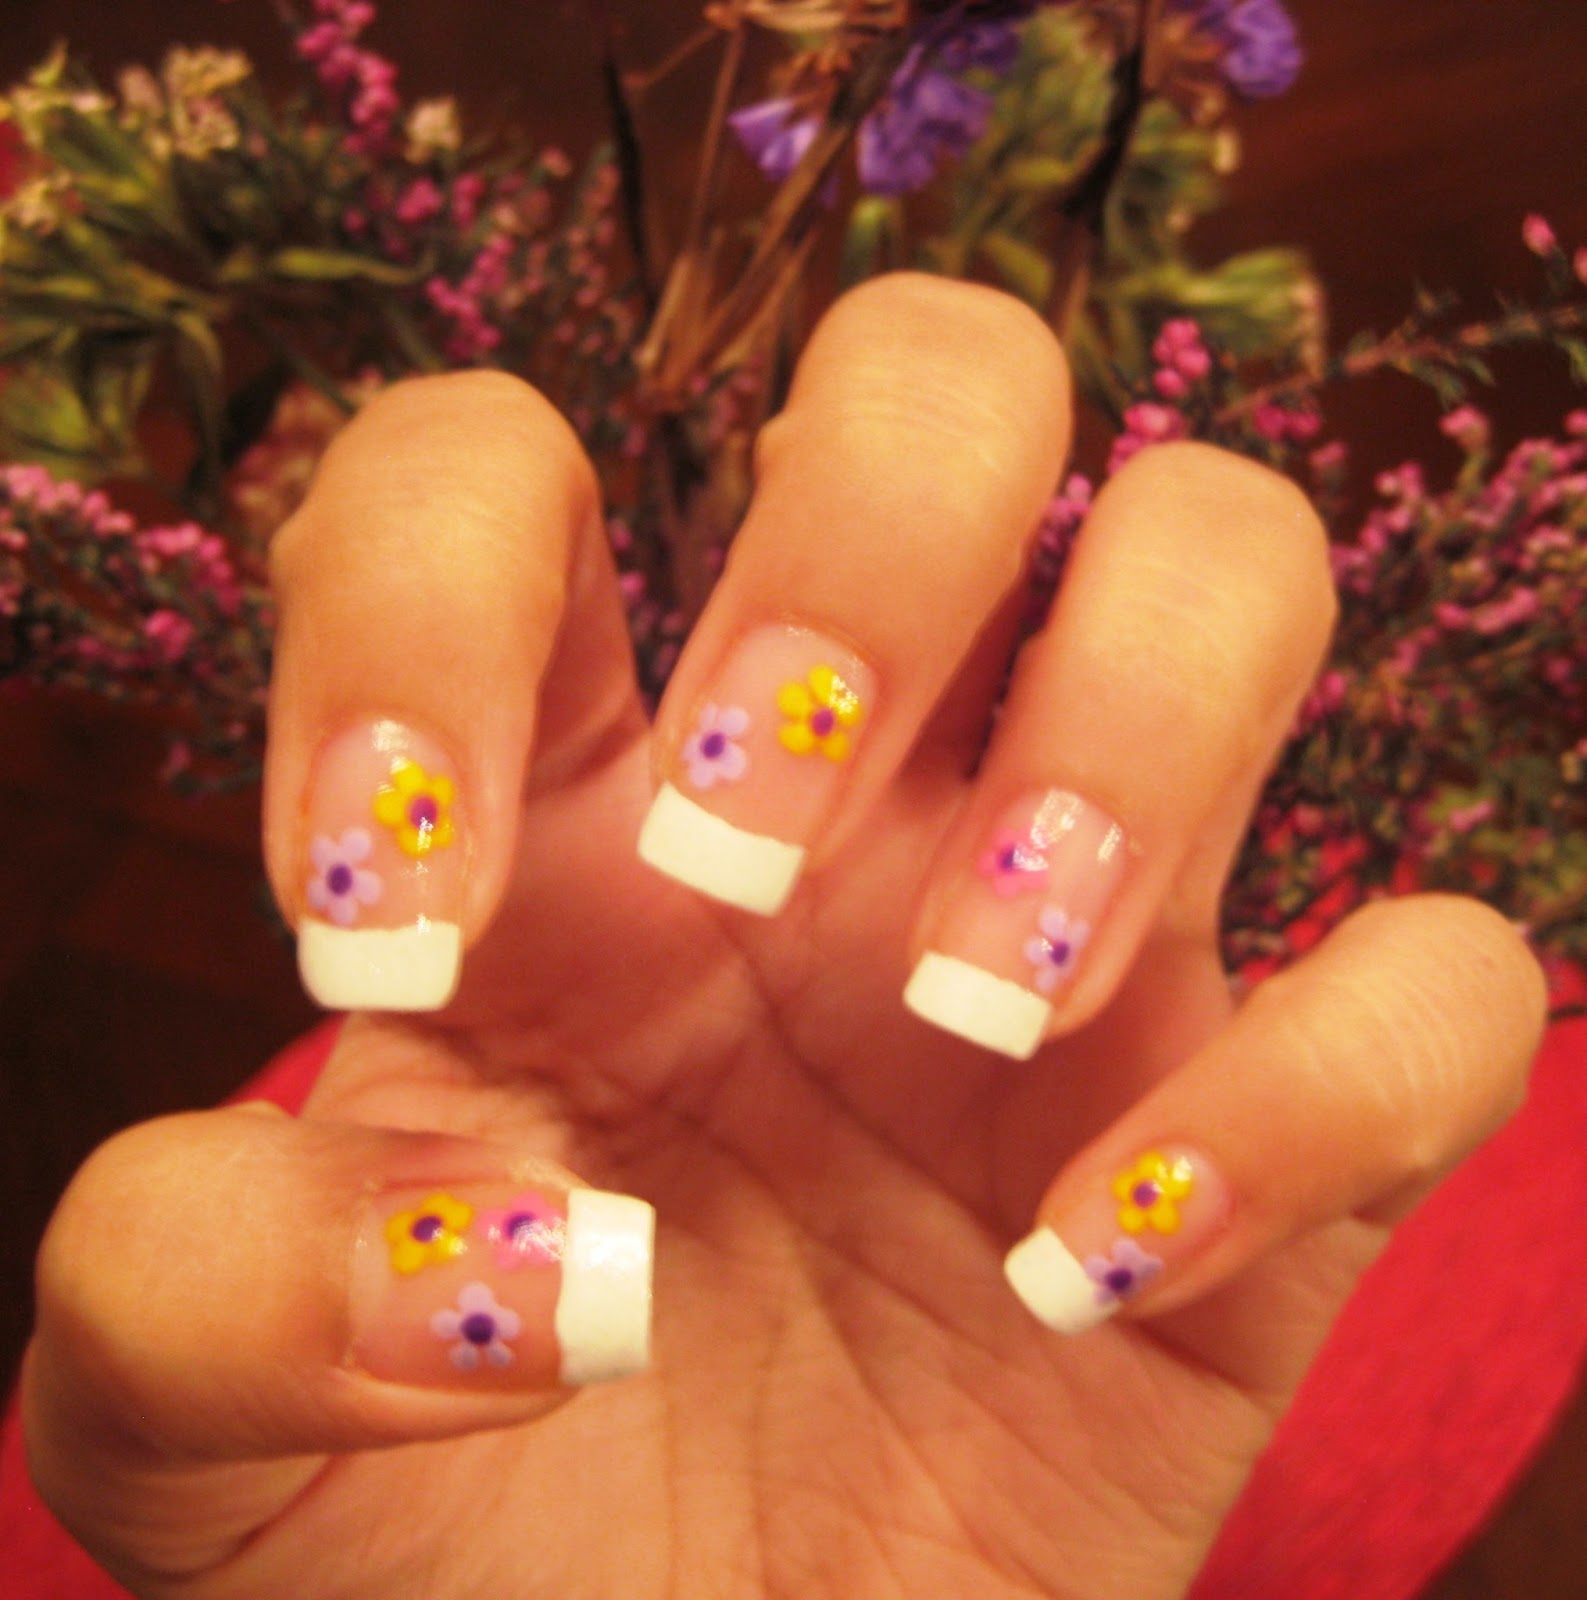 5 Finger Discount: Cute Holiday Nail Art on a budget: French ...